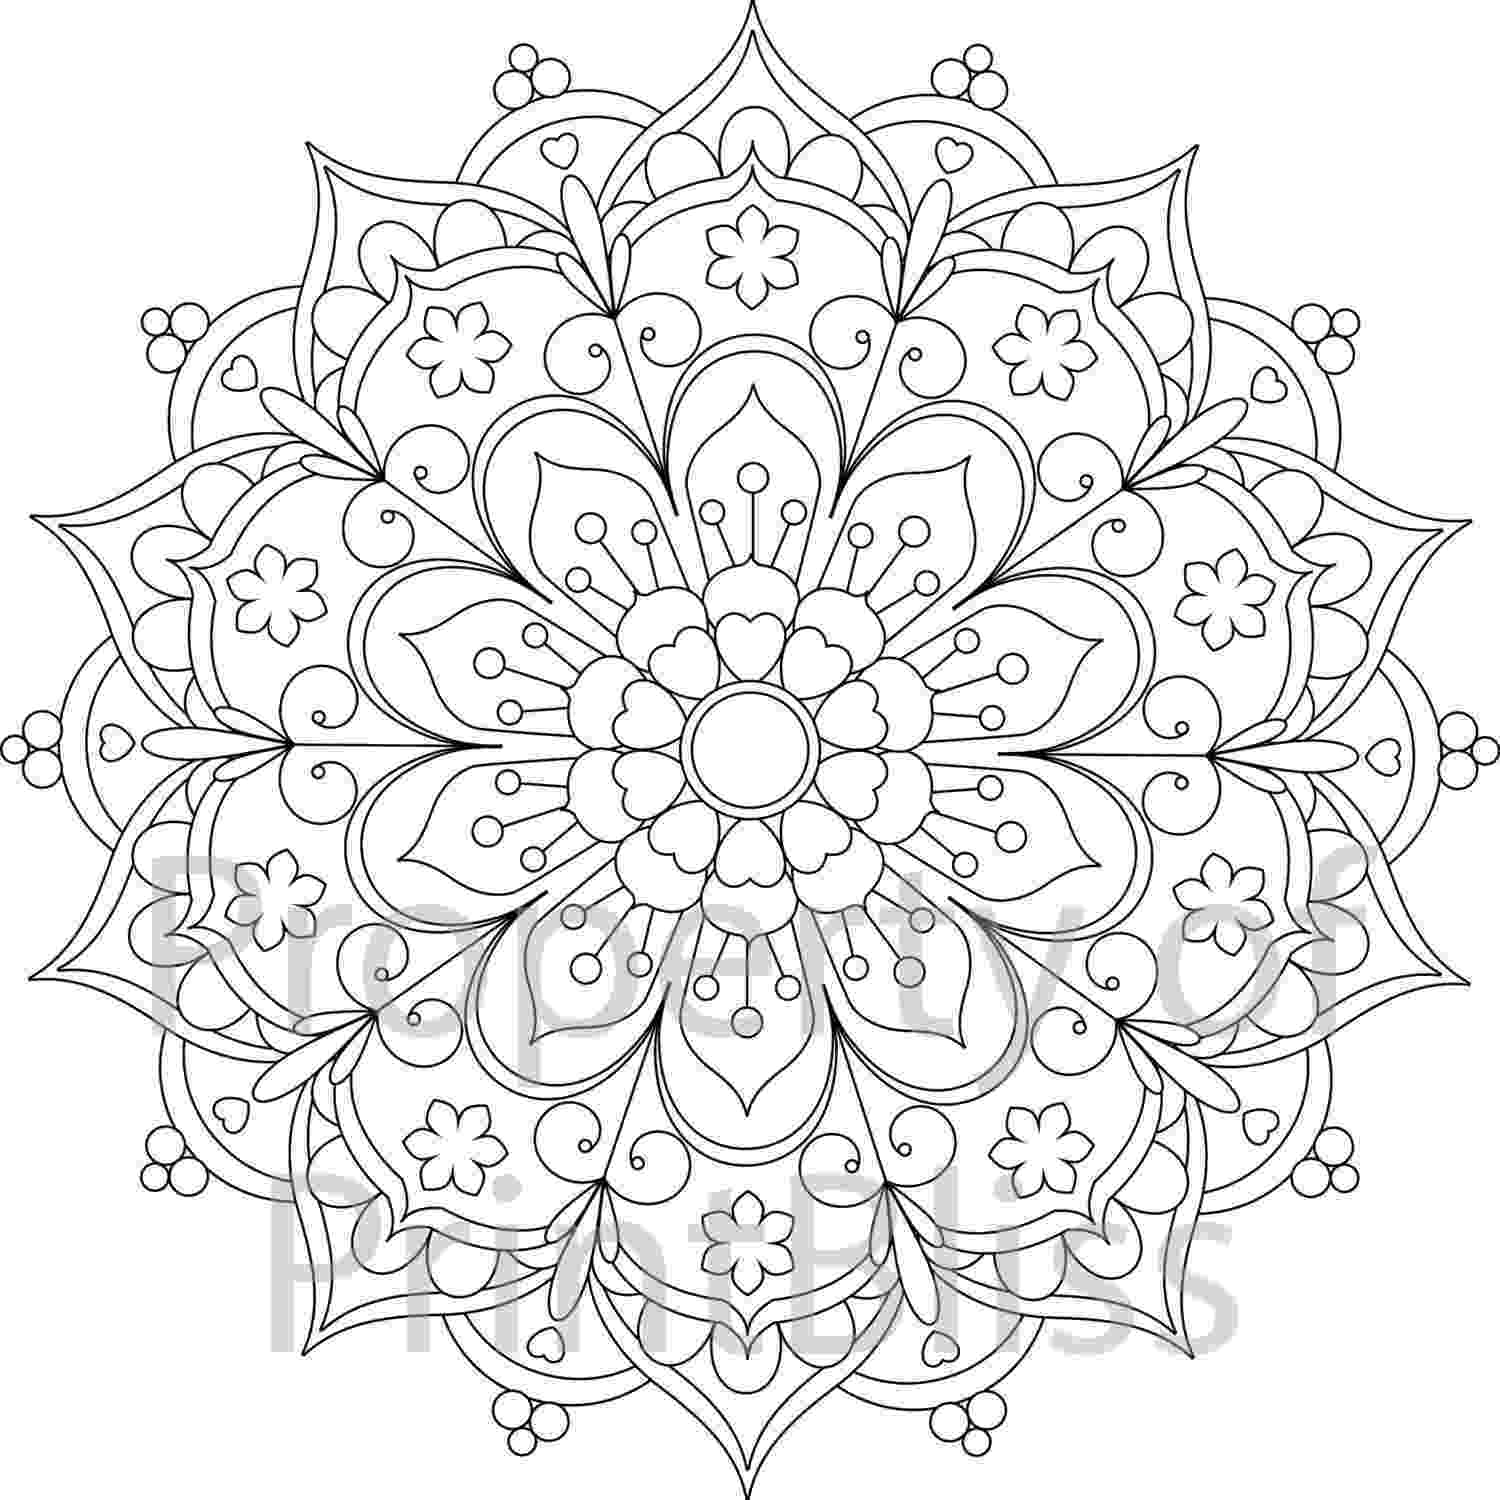 printable flower patterns to color flowers with paisley patterns coloring page free patterns to printable color flower